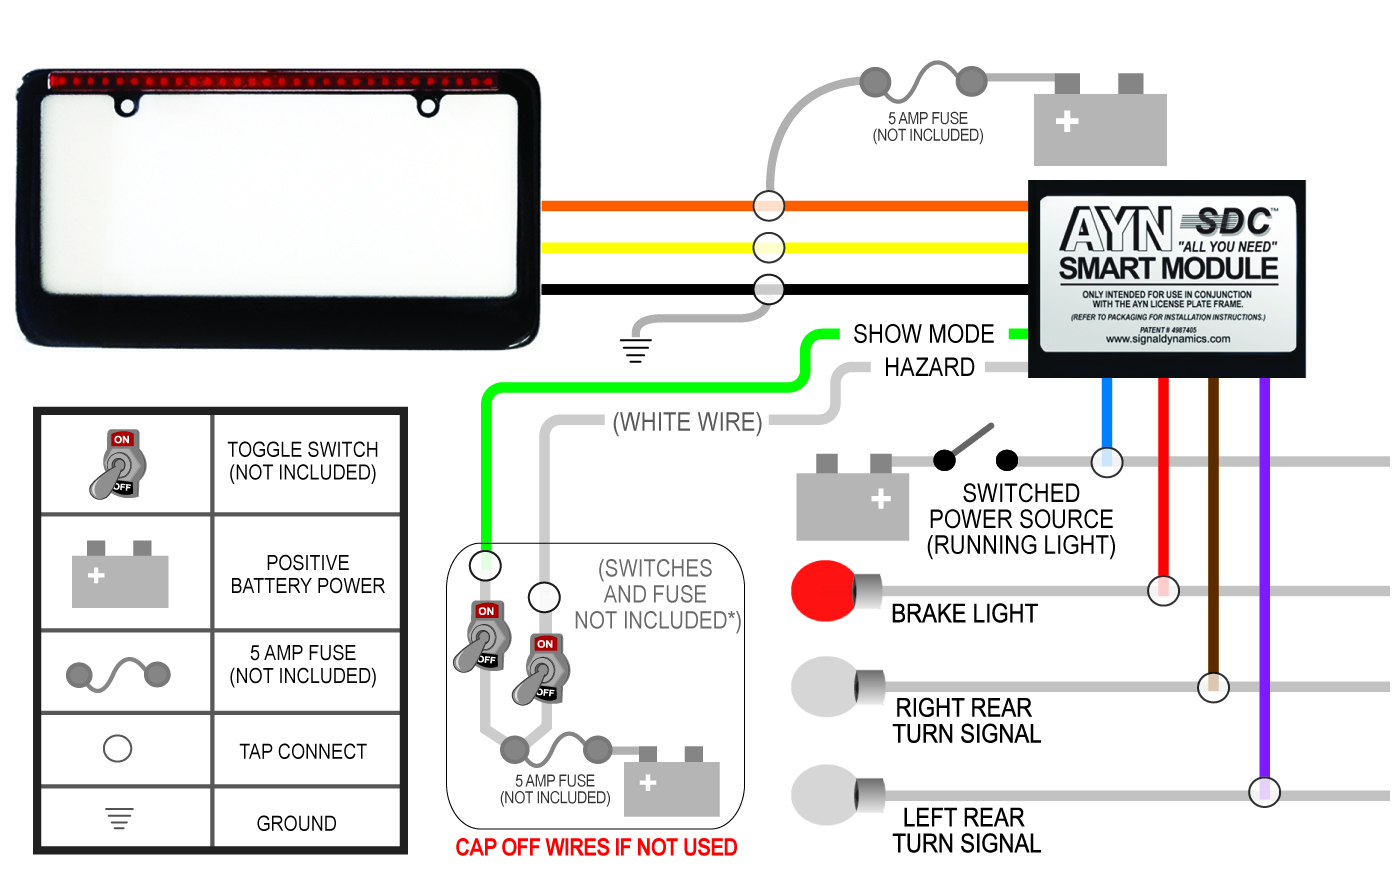 black auto wiring diagram?t=1399476781 black ayn automotive license plate frame & smart module combo Basic Turn Signal Wiring Diagram at cita.asia